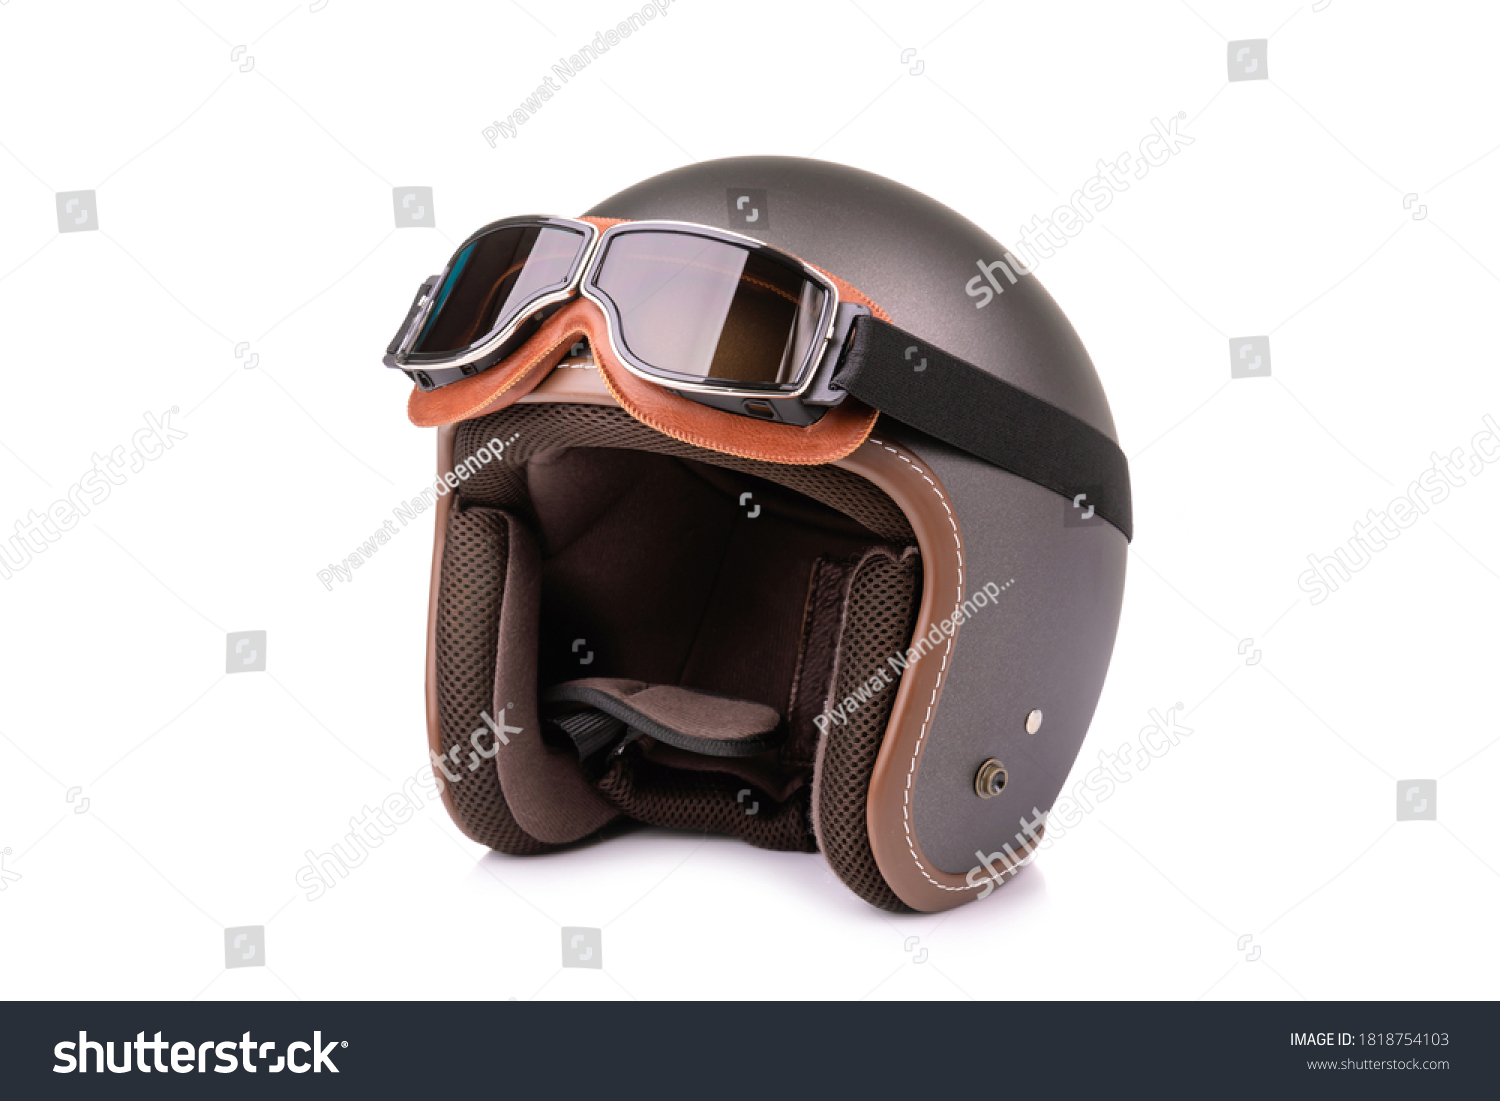 Close up new grey vintage helmet and wind goggle. Studio shot isolated on white background #1818754103